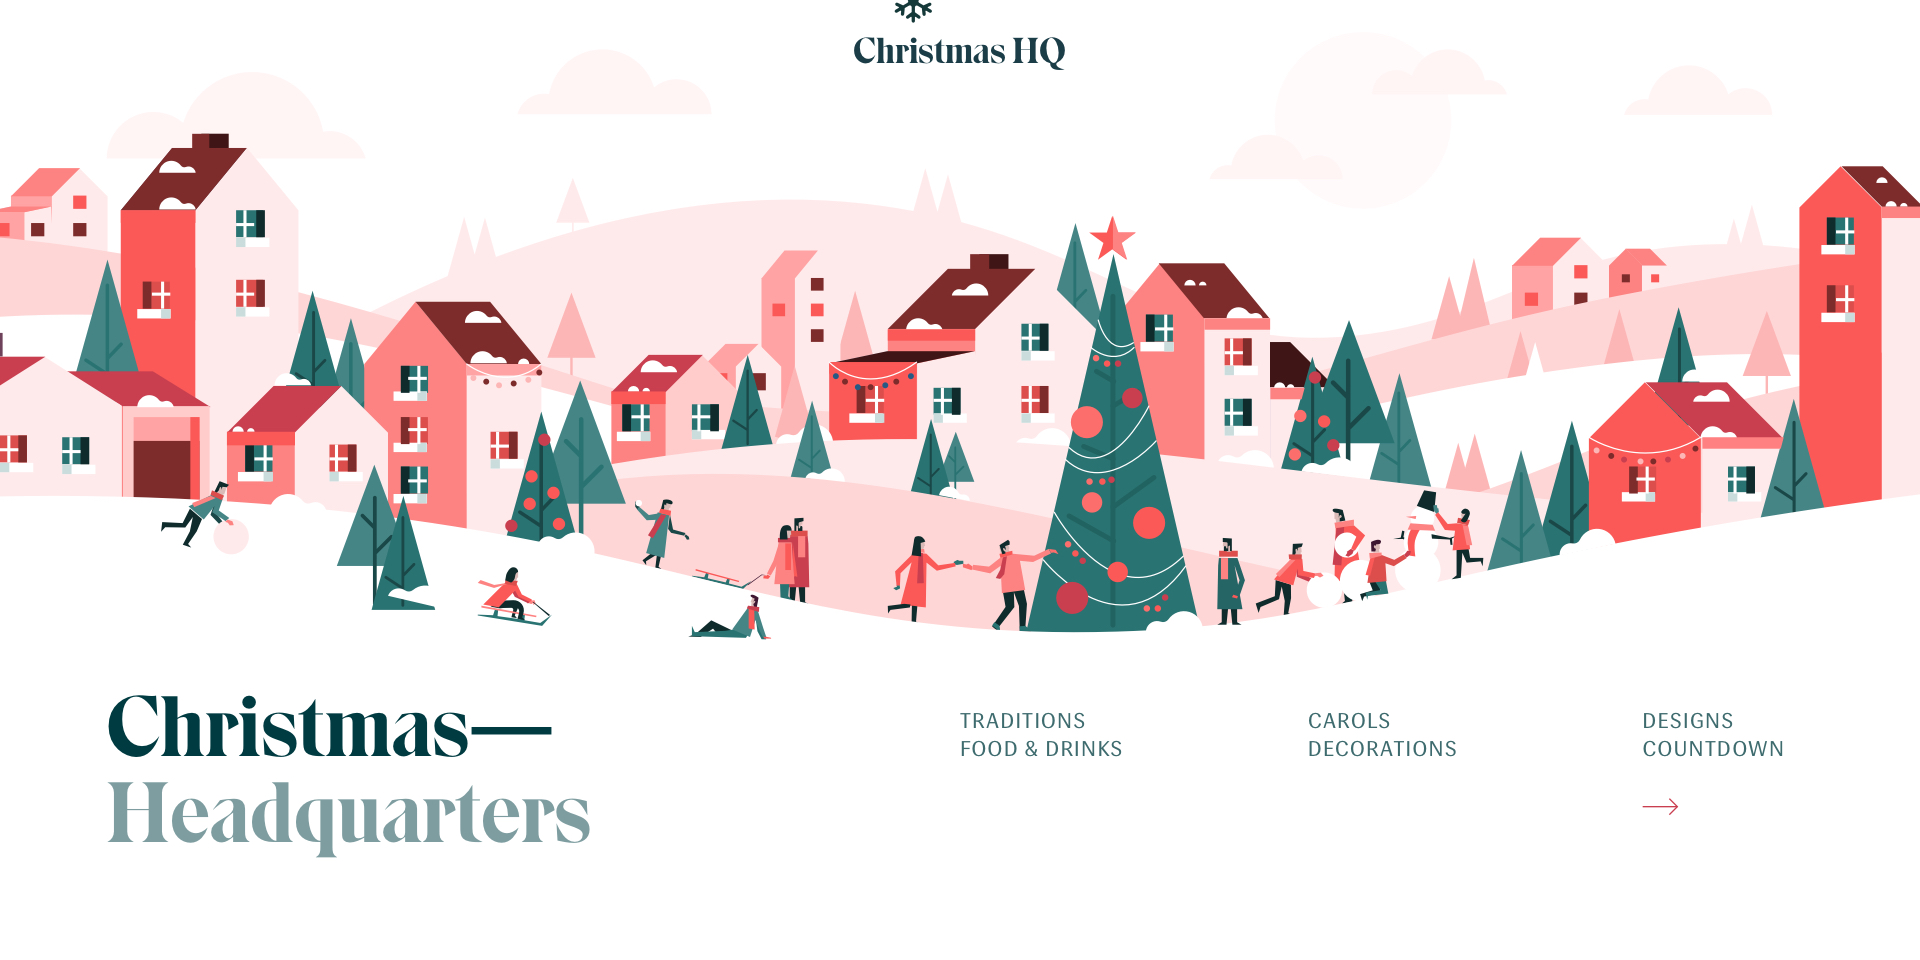 Christmas Design.200 Free Christmas Designs Clipart Images Fonts